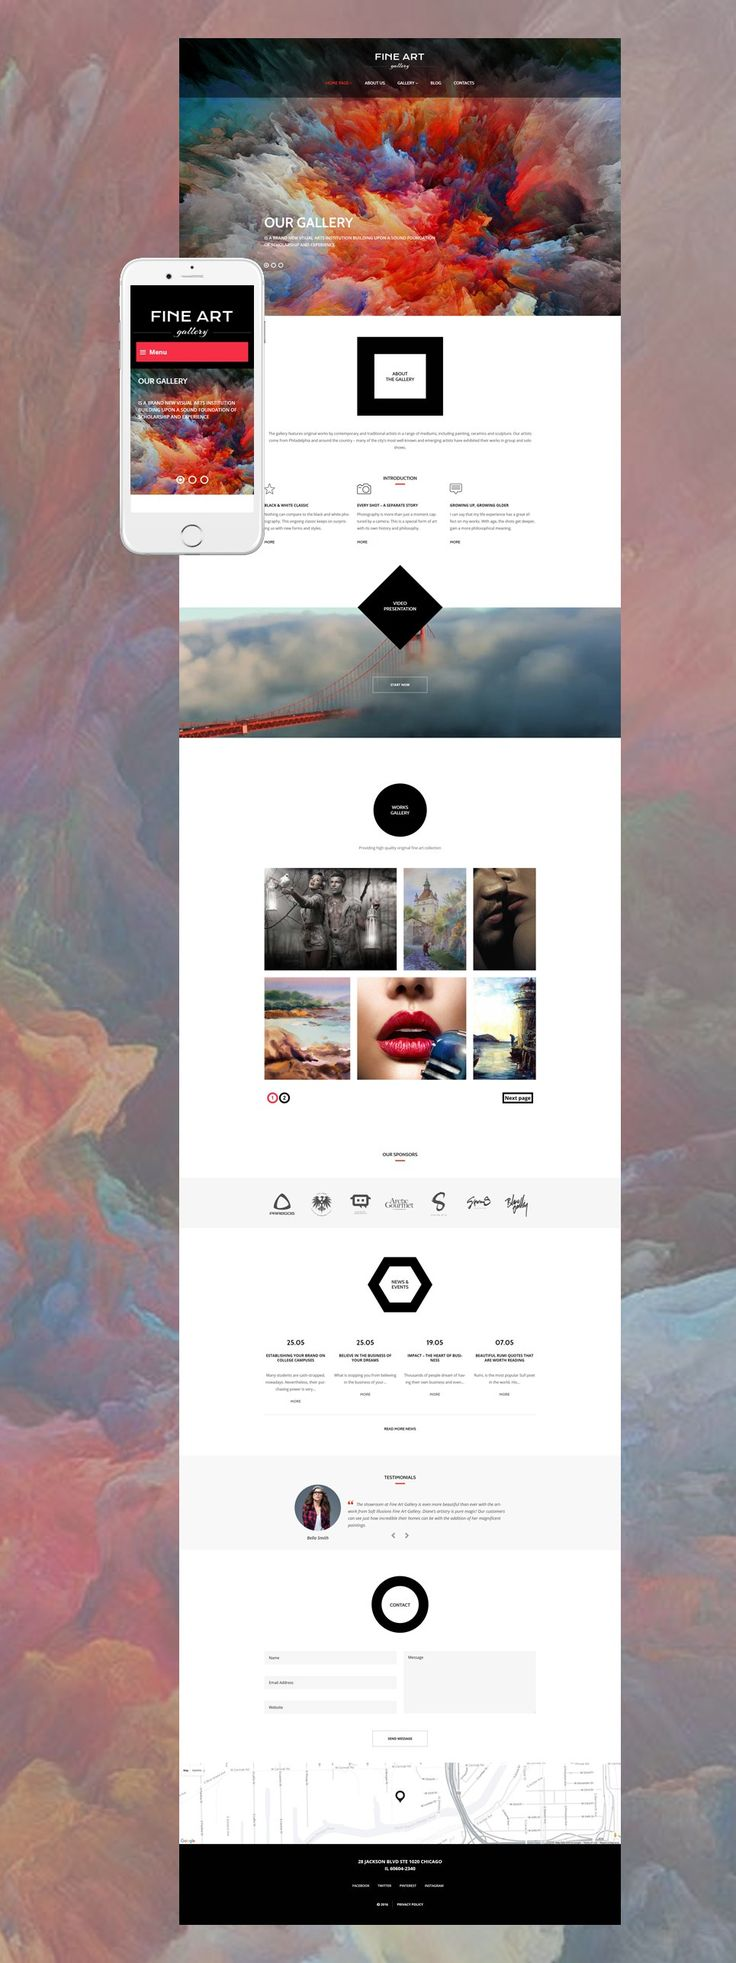 Show off your unique talents with these Art Gallery & Exhibition WordPress Themes - Art Gallery (website theme) Item Picture